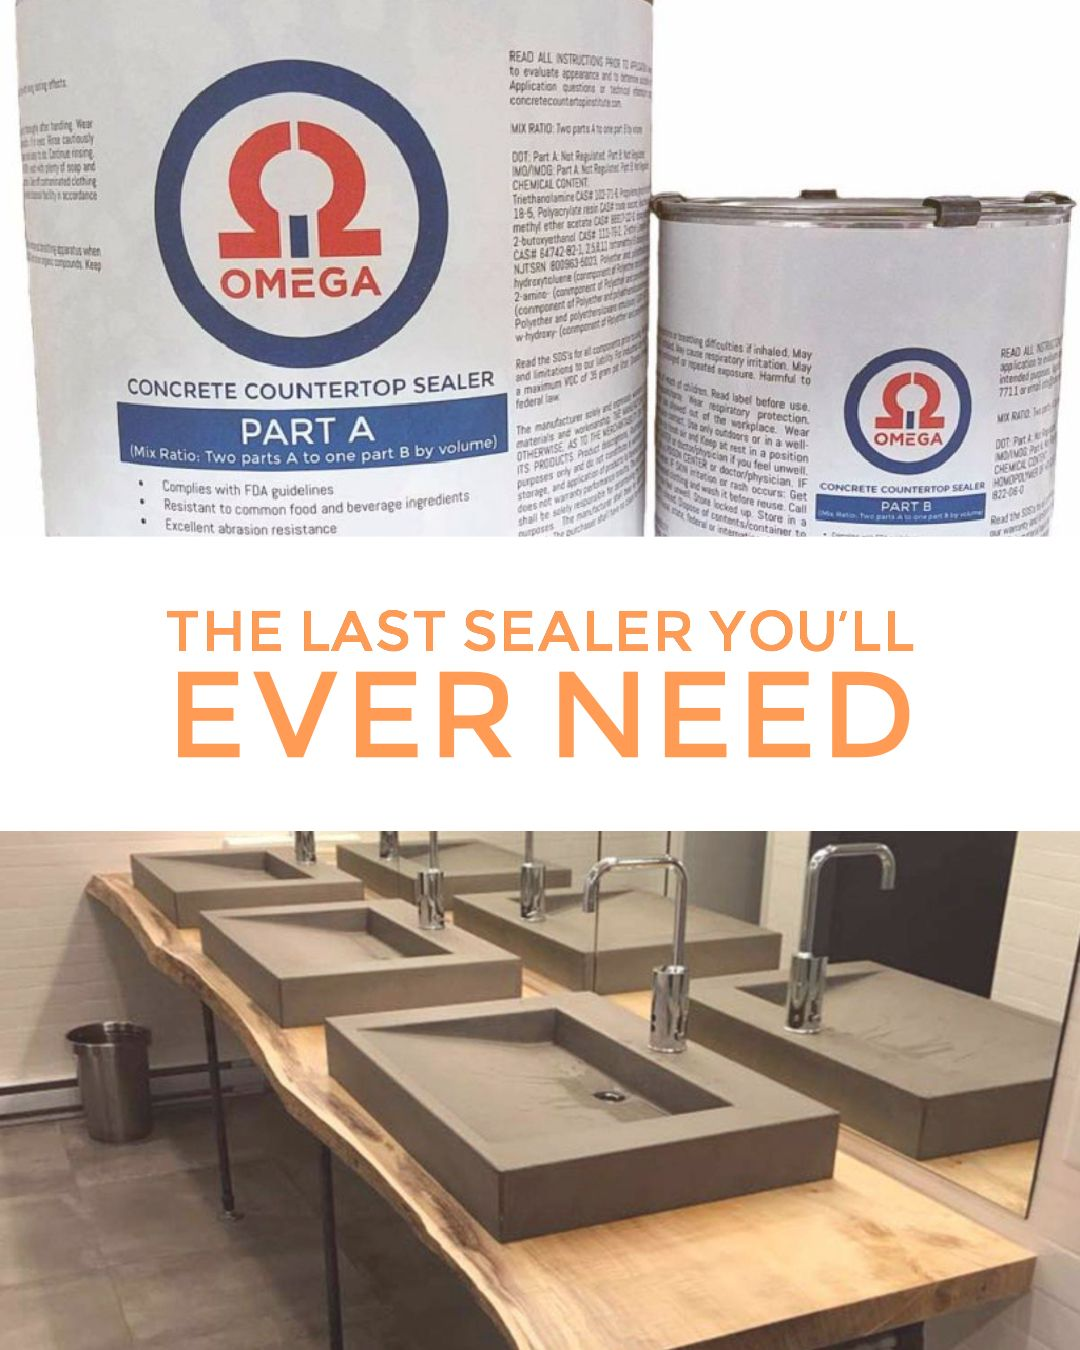 Omega Concrete Countertop Sealer Your Sealer Woes Are Finally